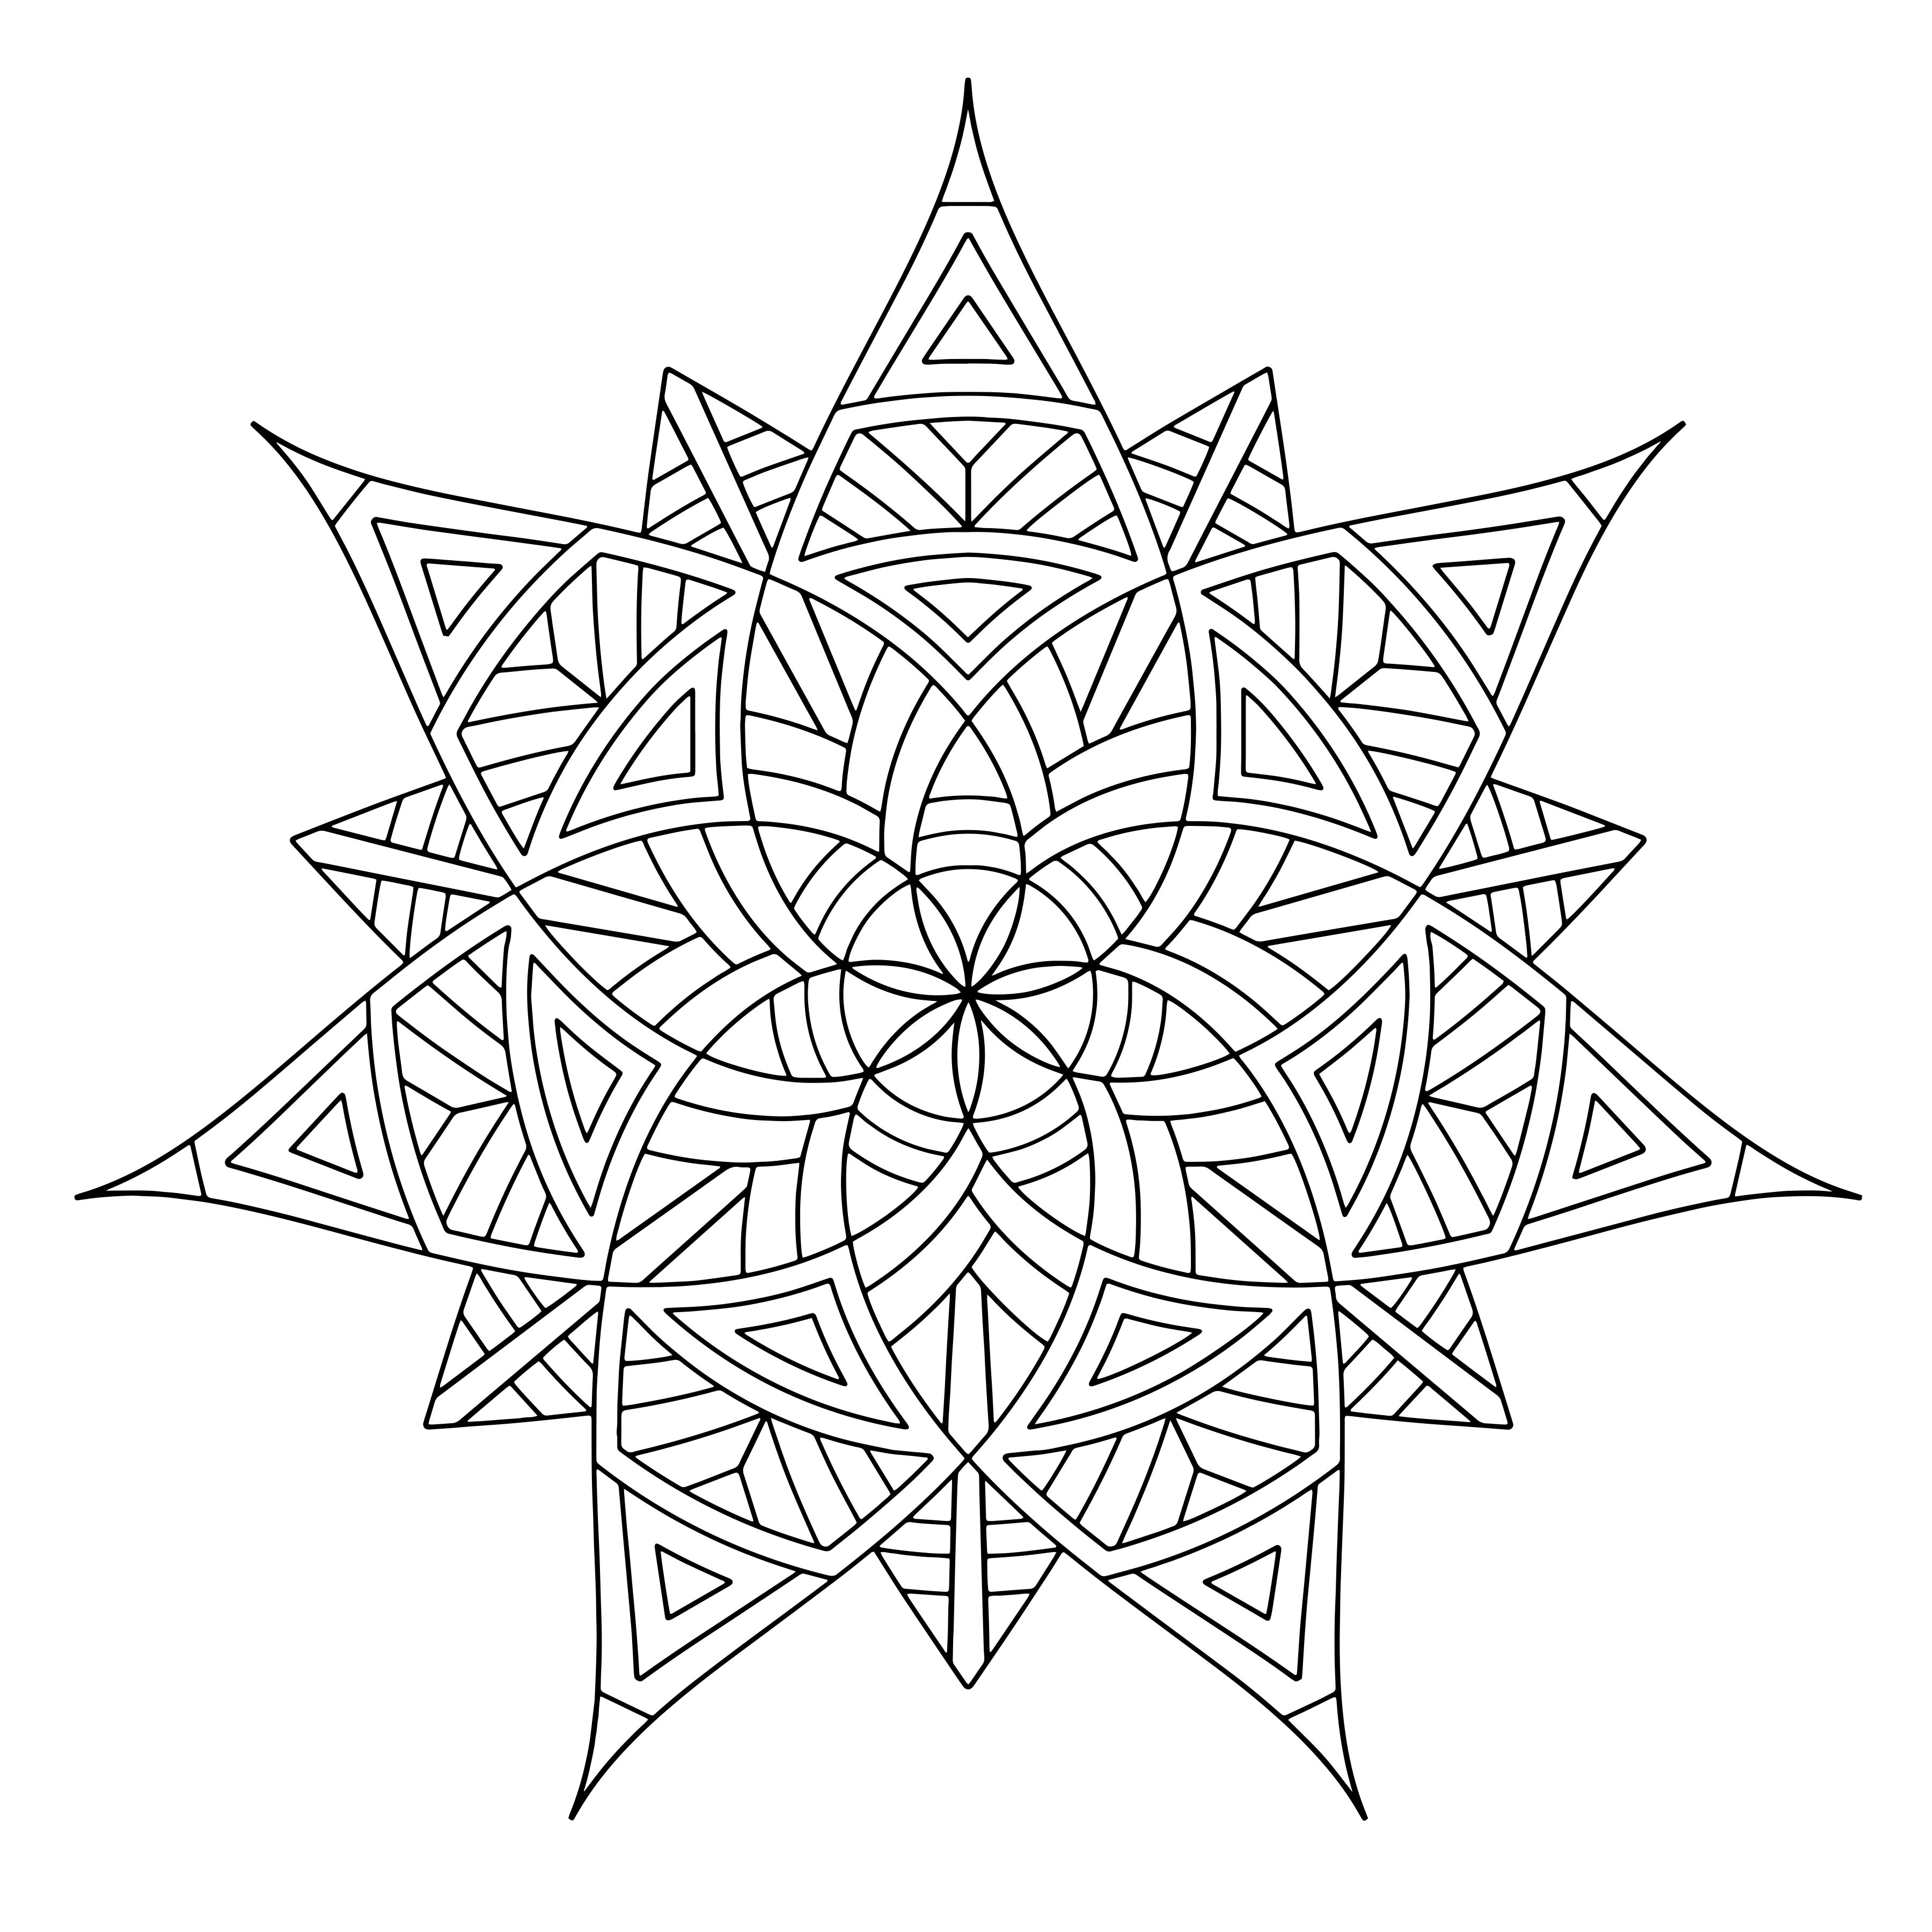 coloring pages for adults free - free printable geometric coloring pages for adults